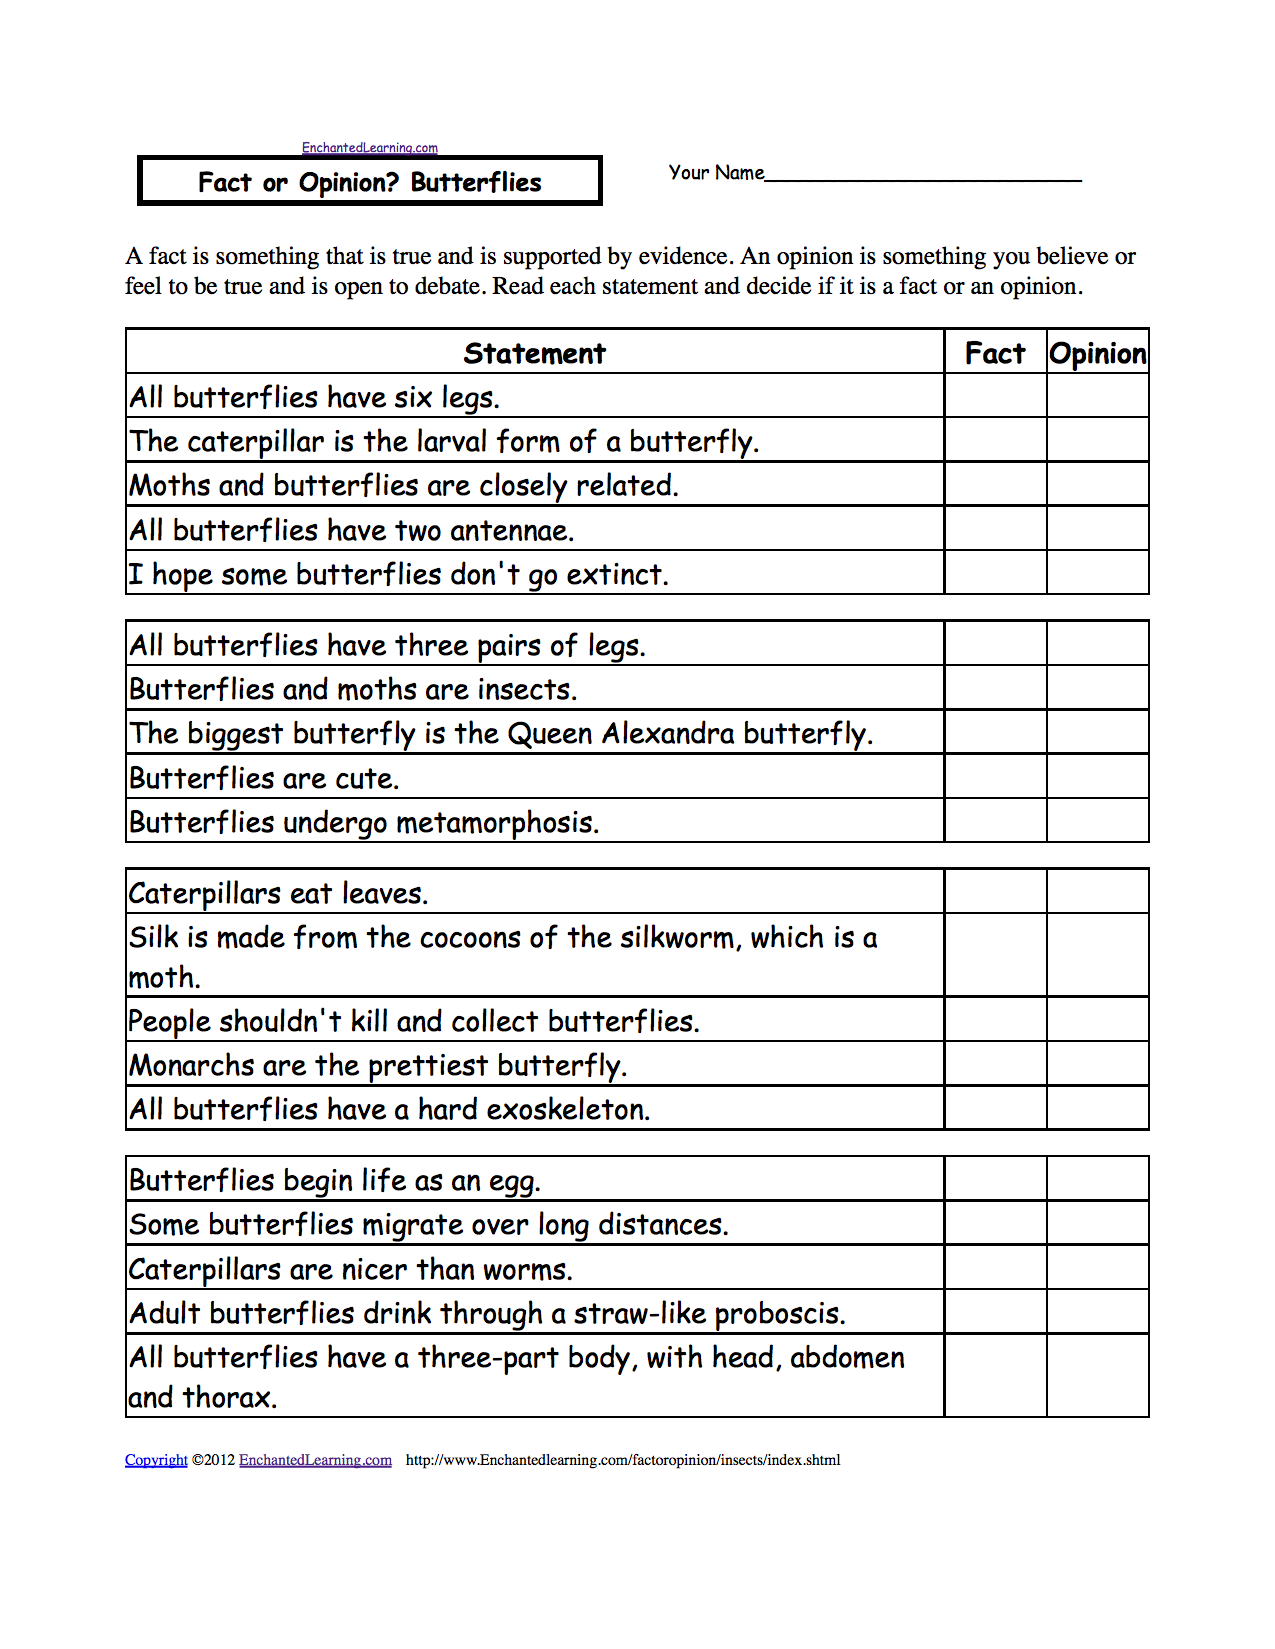 Fact or Opinion Checkmark Worksheets to Print EnchantedLearning – Fact or Opinion Worksheet